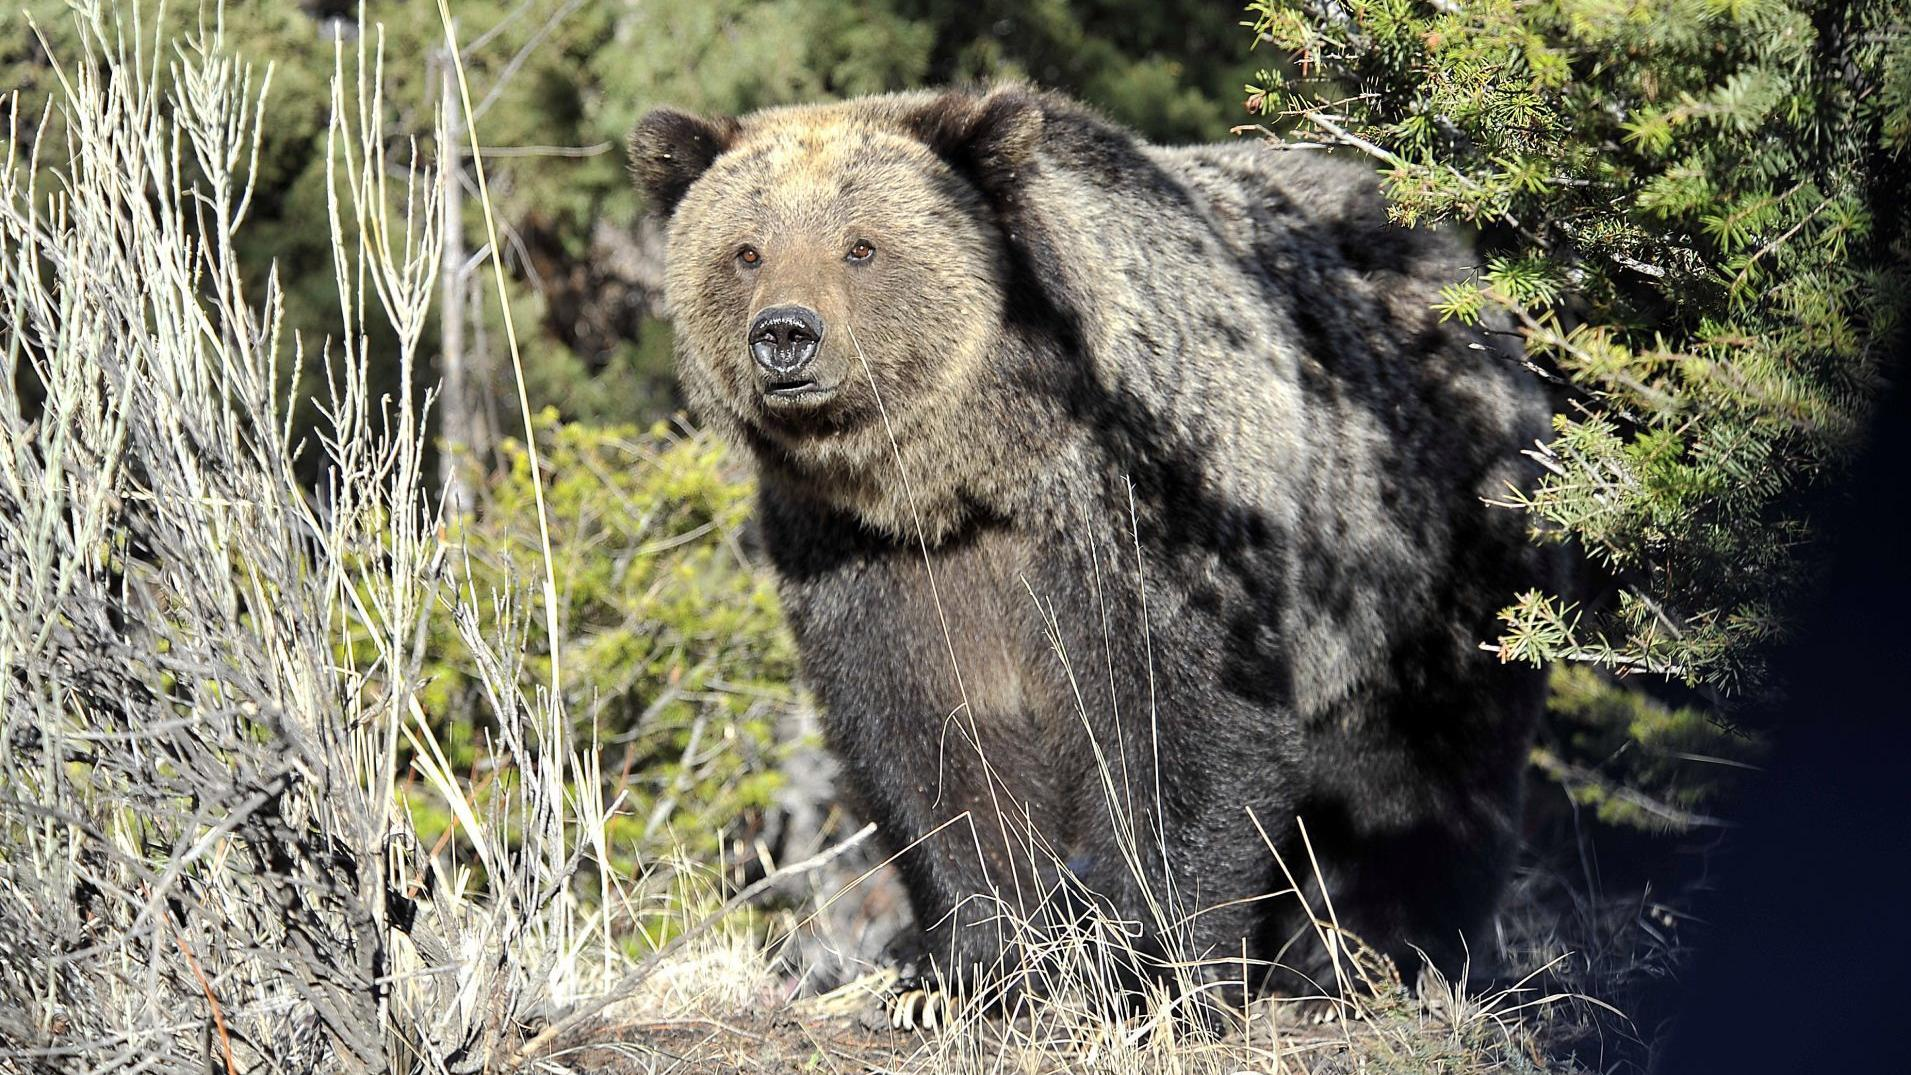 Hunter recovering after grizzly attacks in Montana mountains